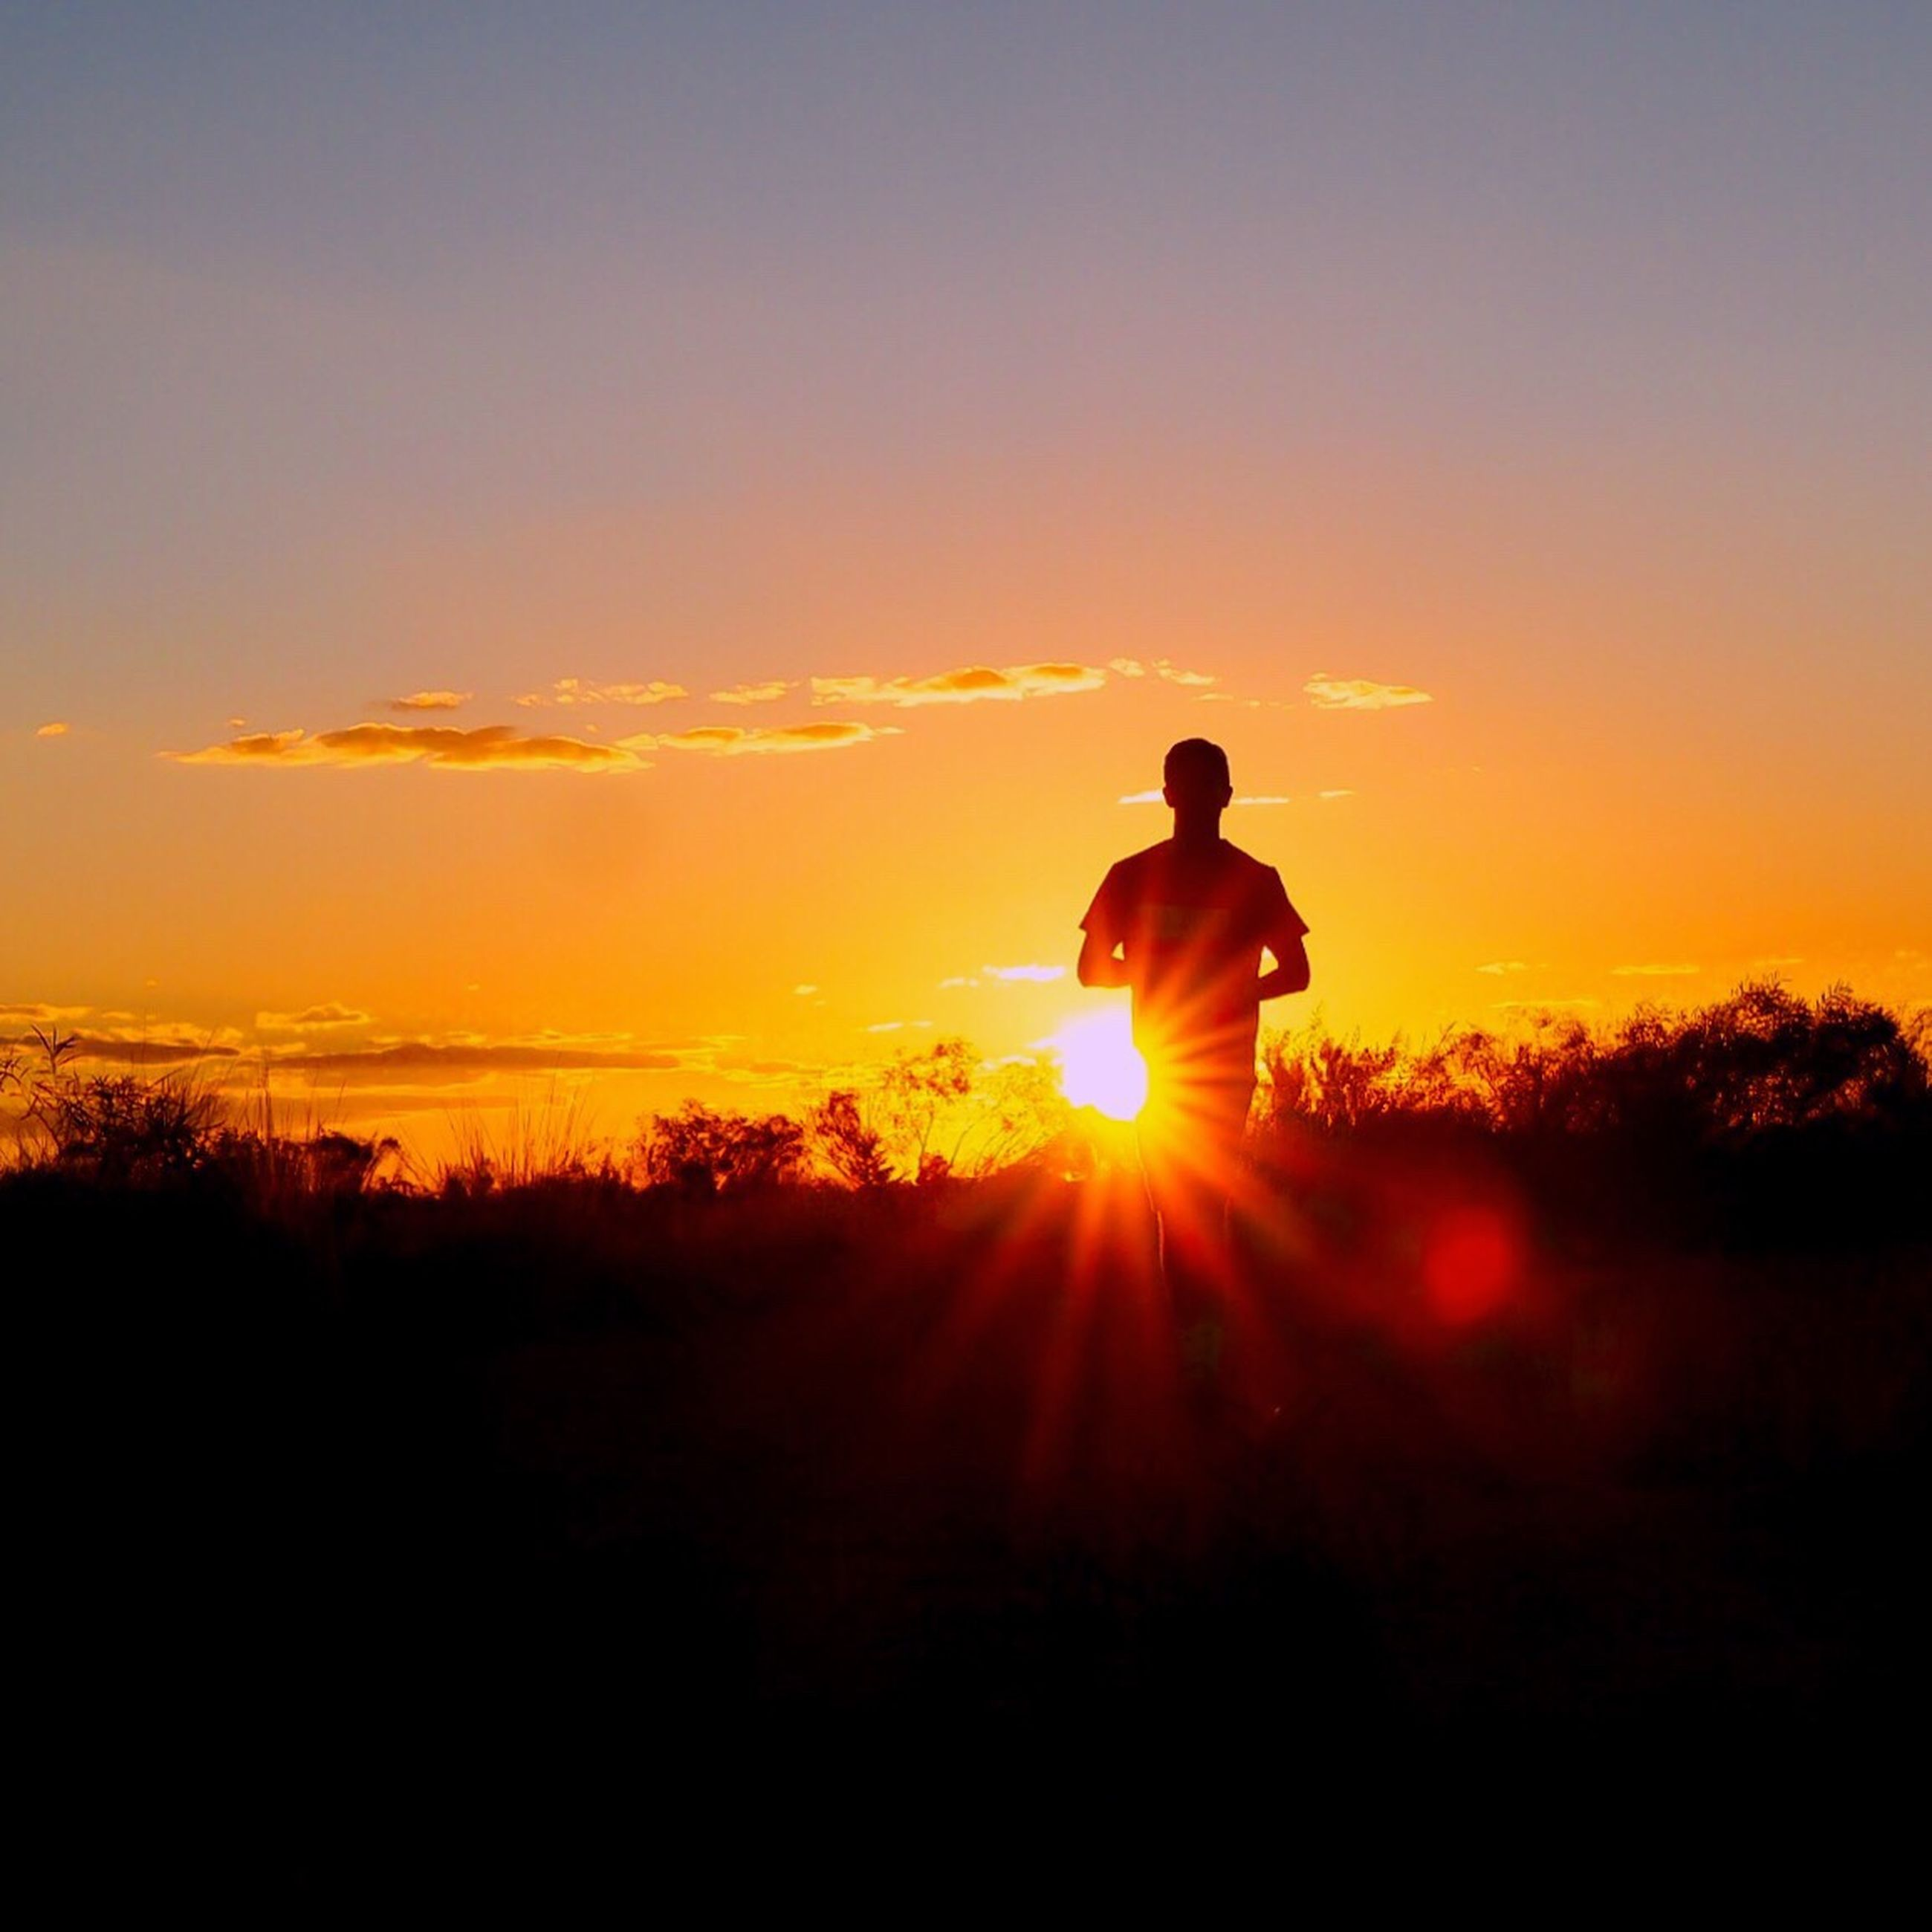 sunset, silhouette, one person, real people, orange color, sun, nature, beauty in nature, leisure activity, standing, men, sunlight, field, scenics, sky, lifestyles, adventure, full length, landscape, outdoors, one man only, tree, only men, adult, adults only, people